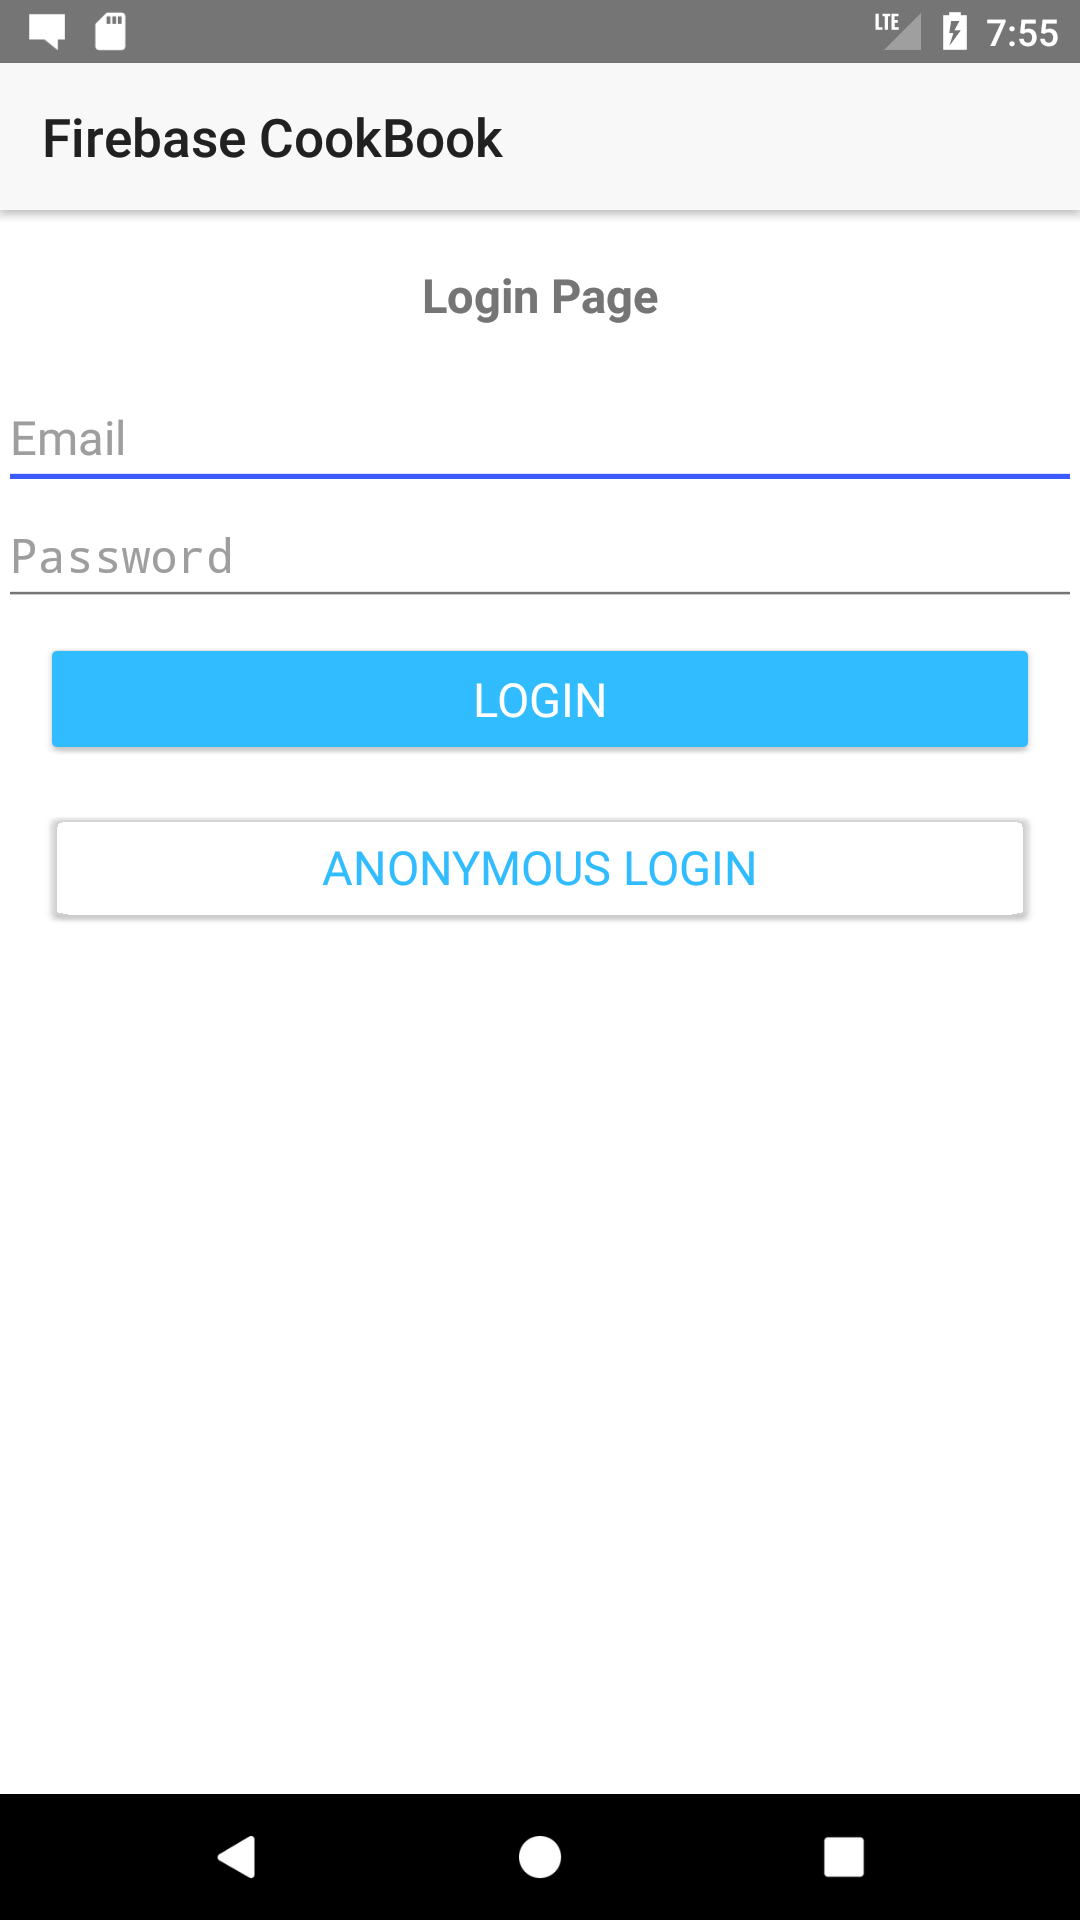 Application login page